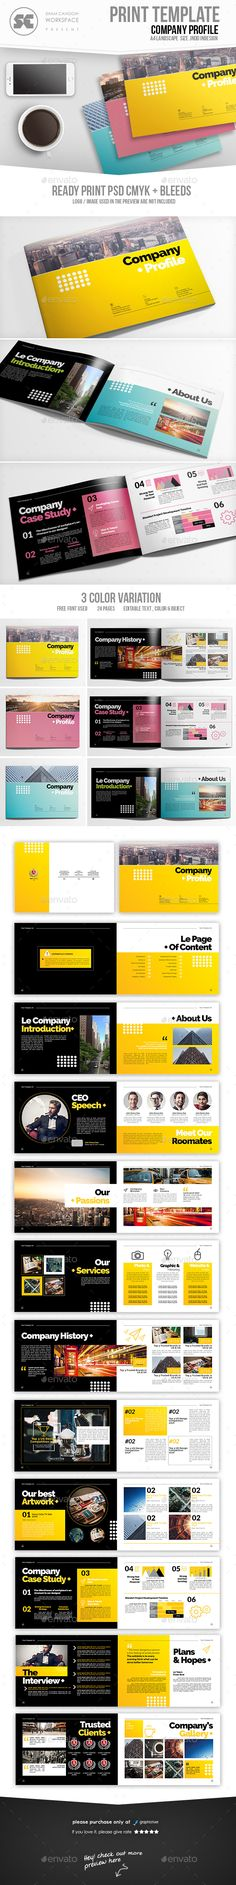 Company Profile Powerpoint Template Company profile, Template and